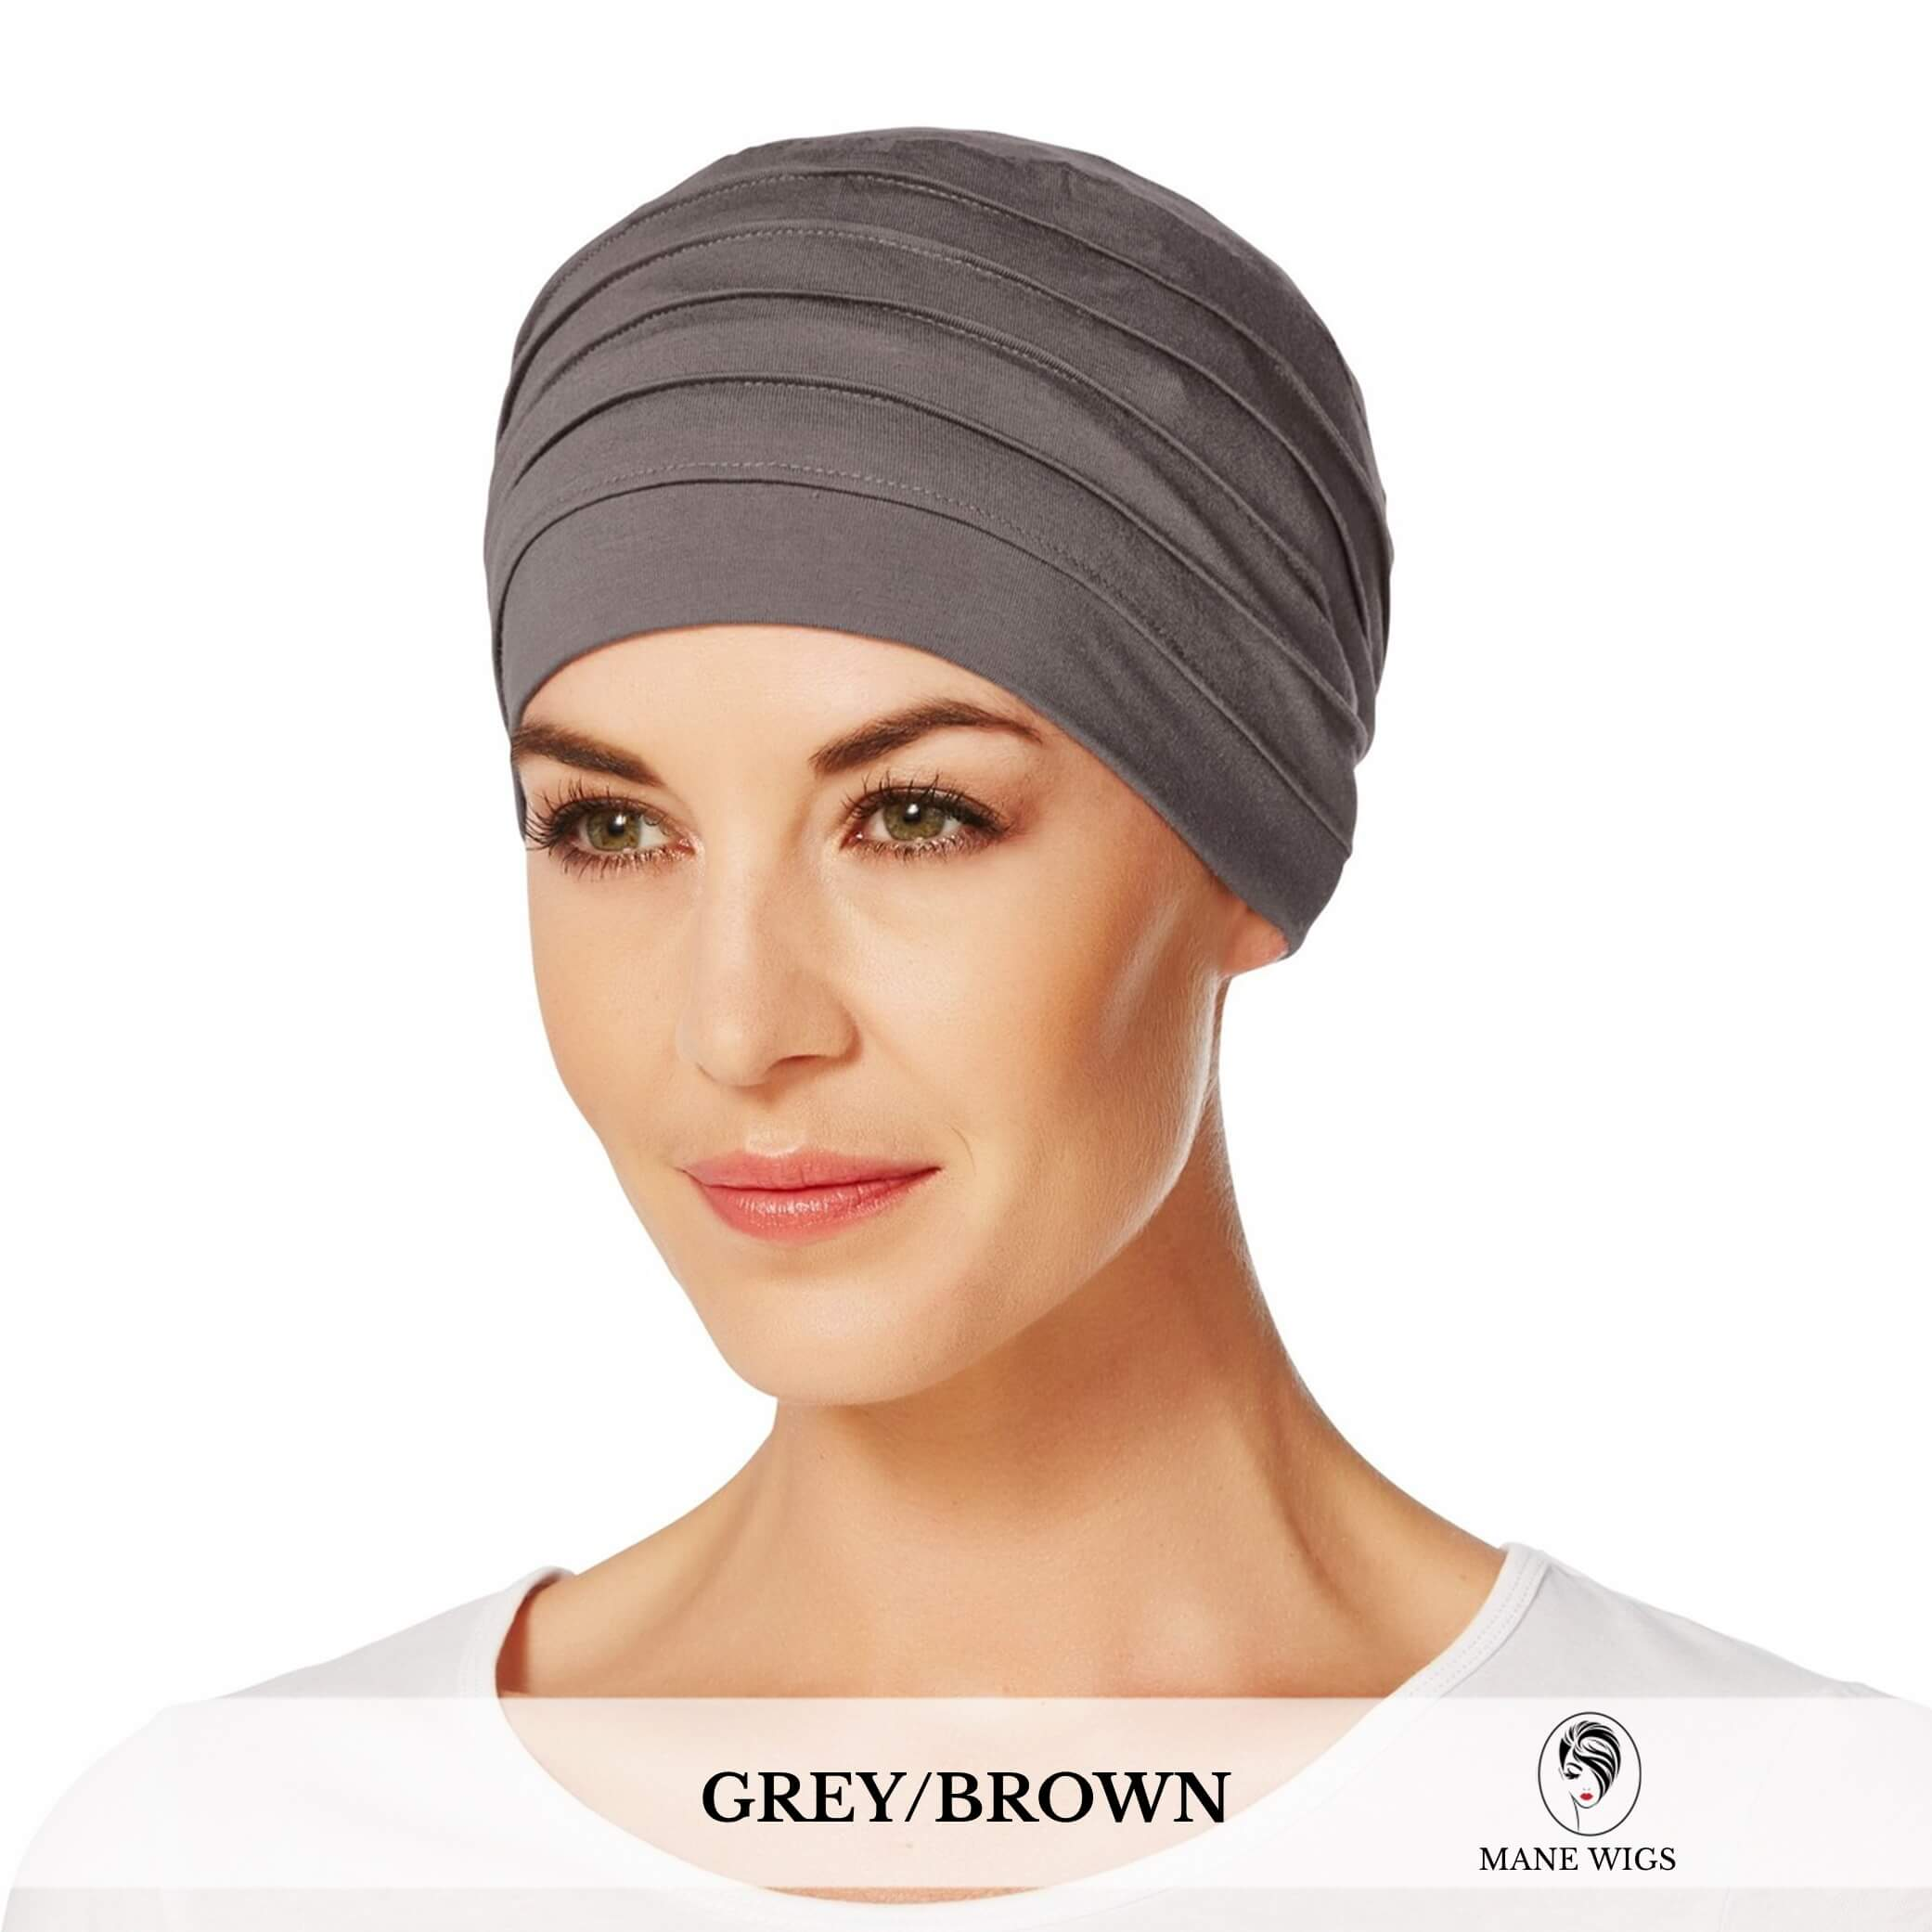 Christine Headwear Yoga Turban 253-Grey/Brown